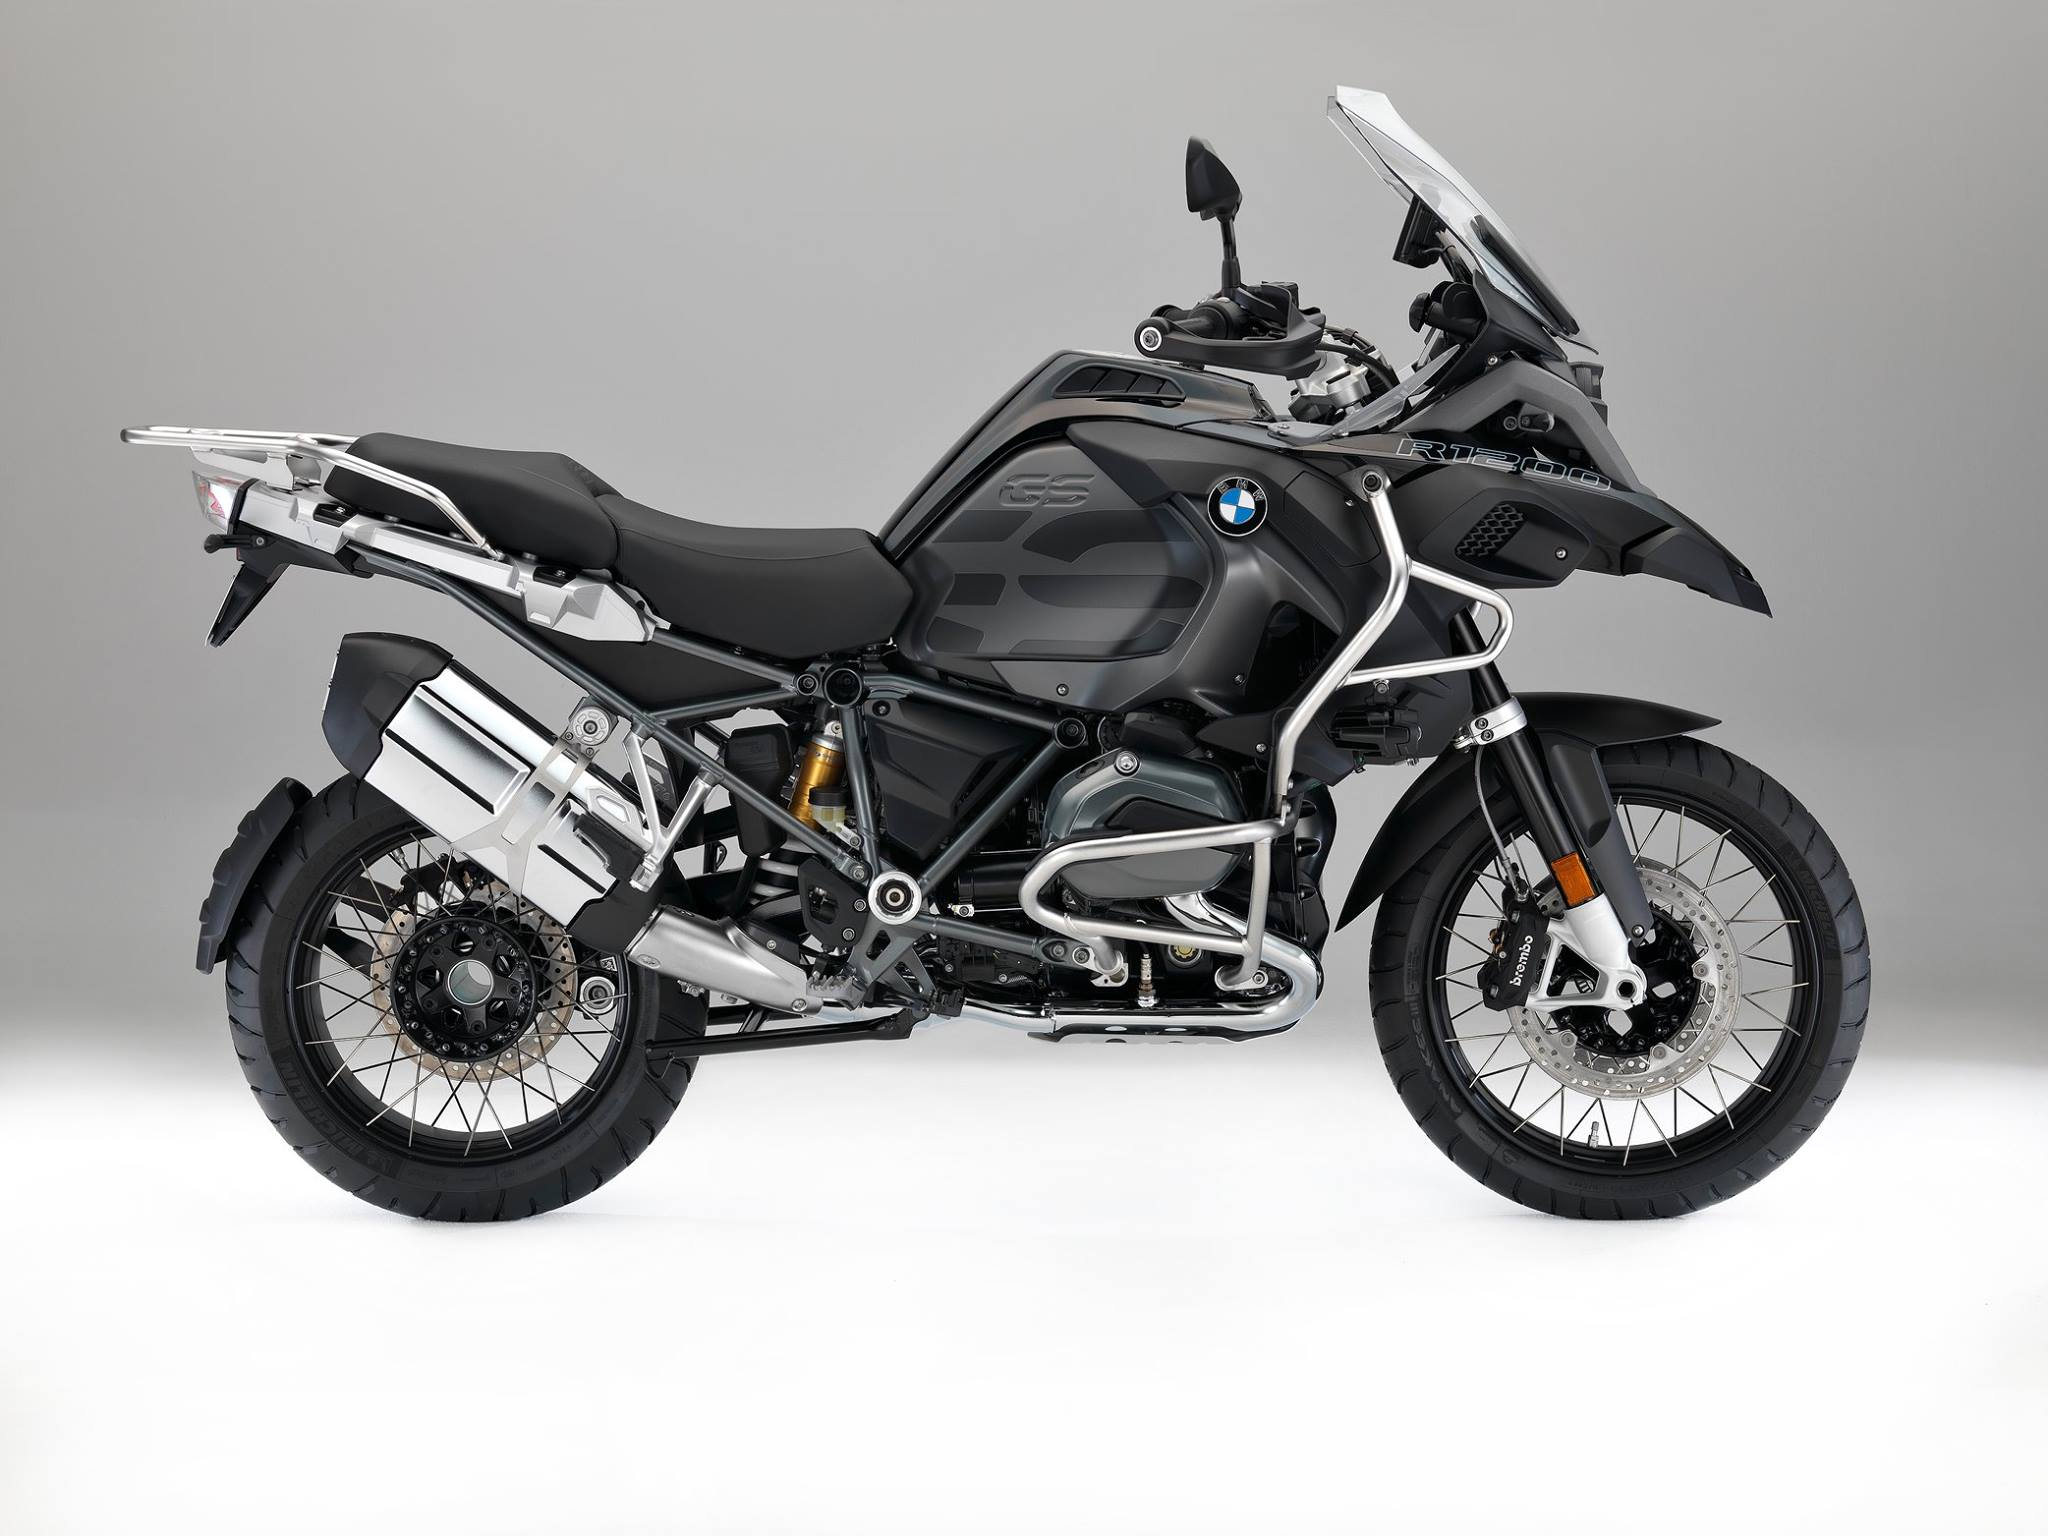 2017 bmw r1200gs adventure triple black looks sleek autoevolution. Black Bedroom Furniture Sets. Home Design Ideas